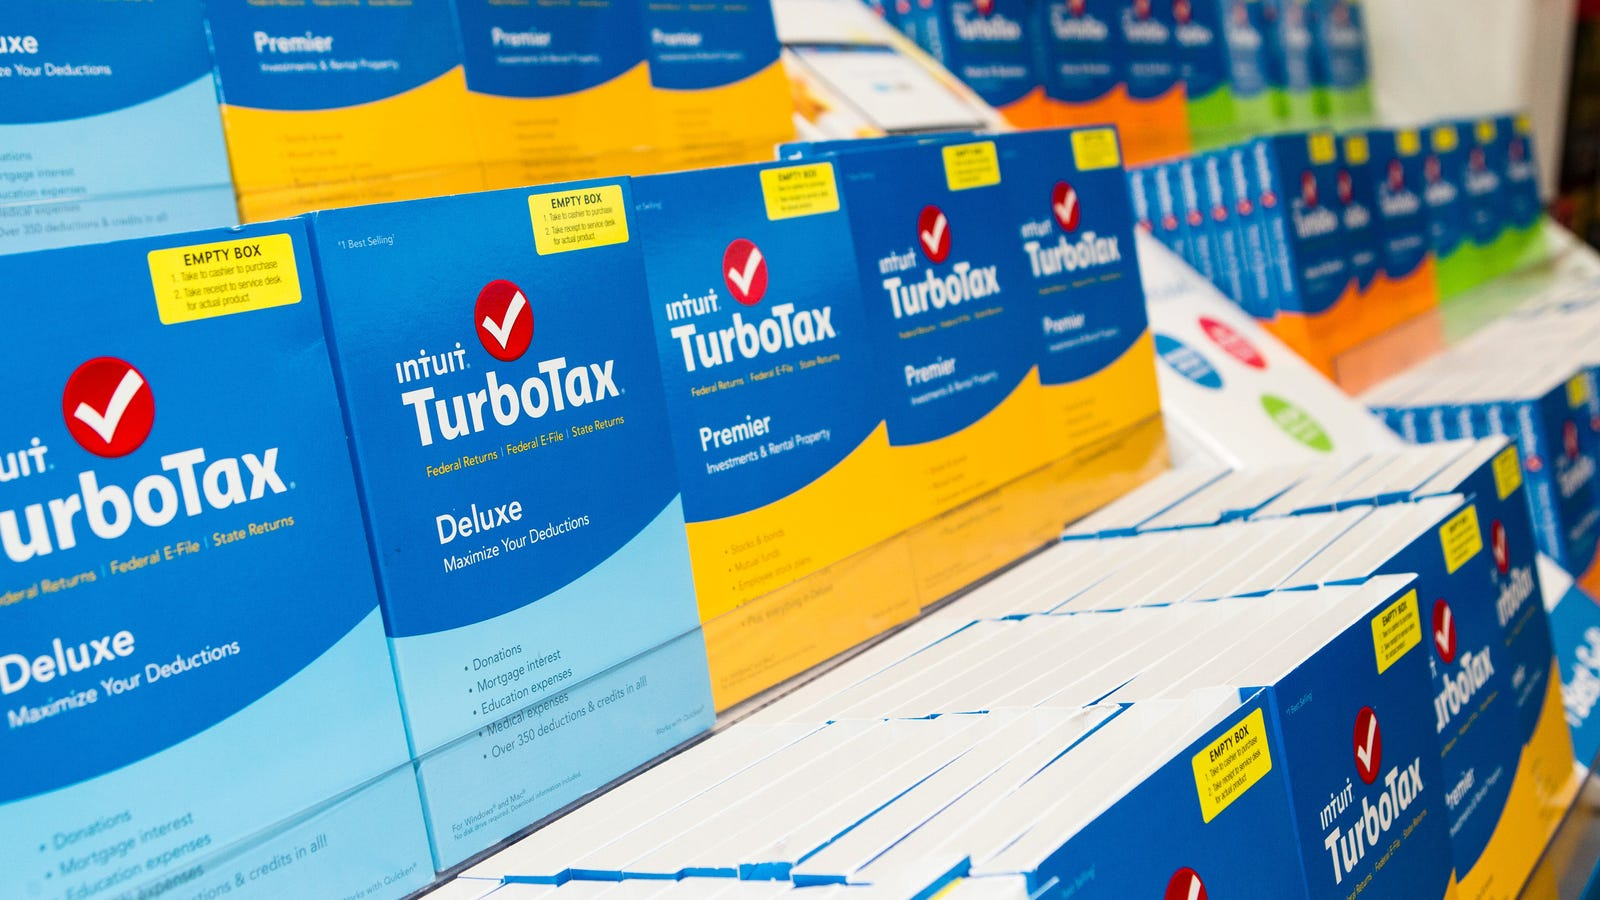 TurboTax Found a Depraved Way to Bump Profits After Tax Filing Process Was Simplified